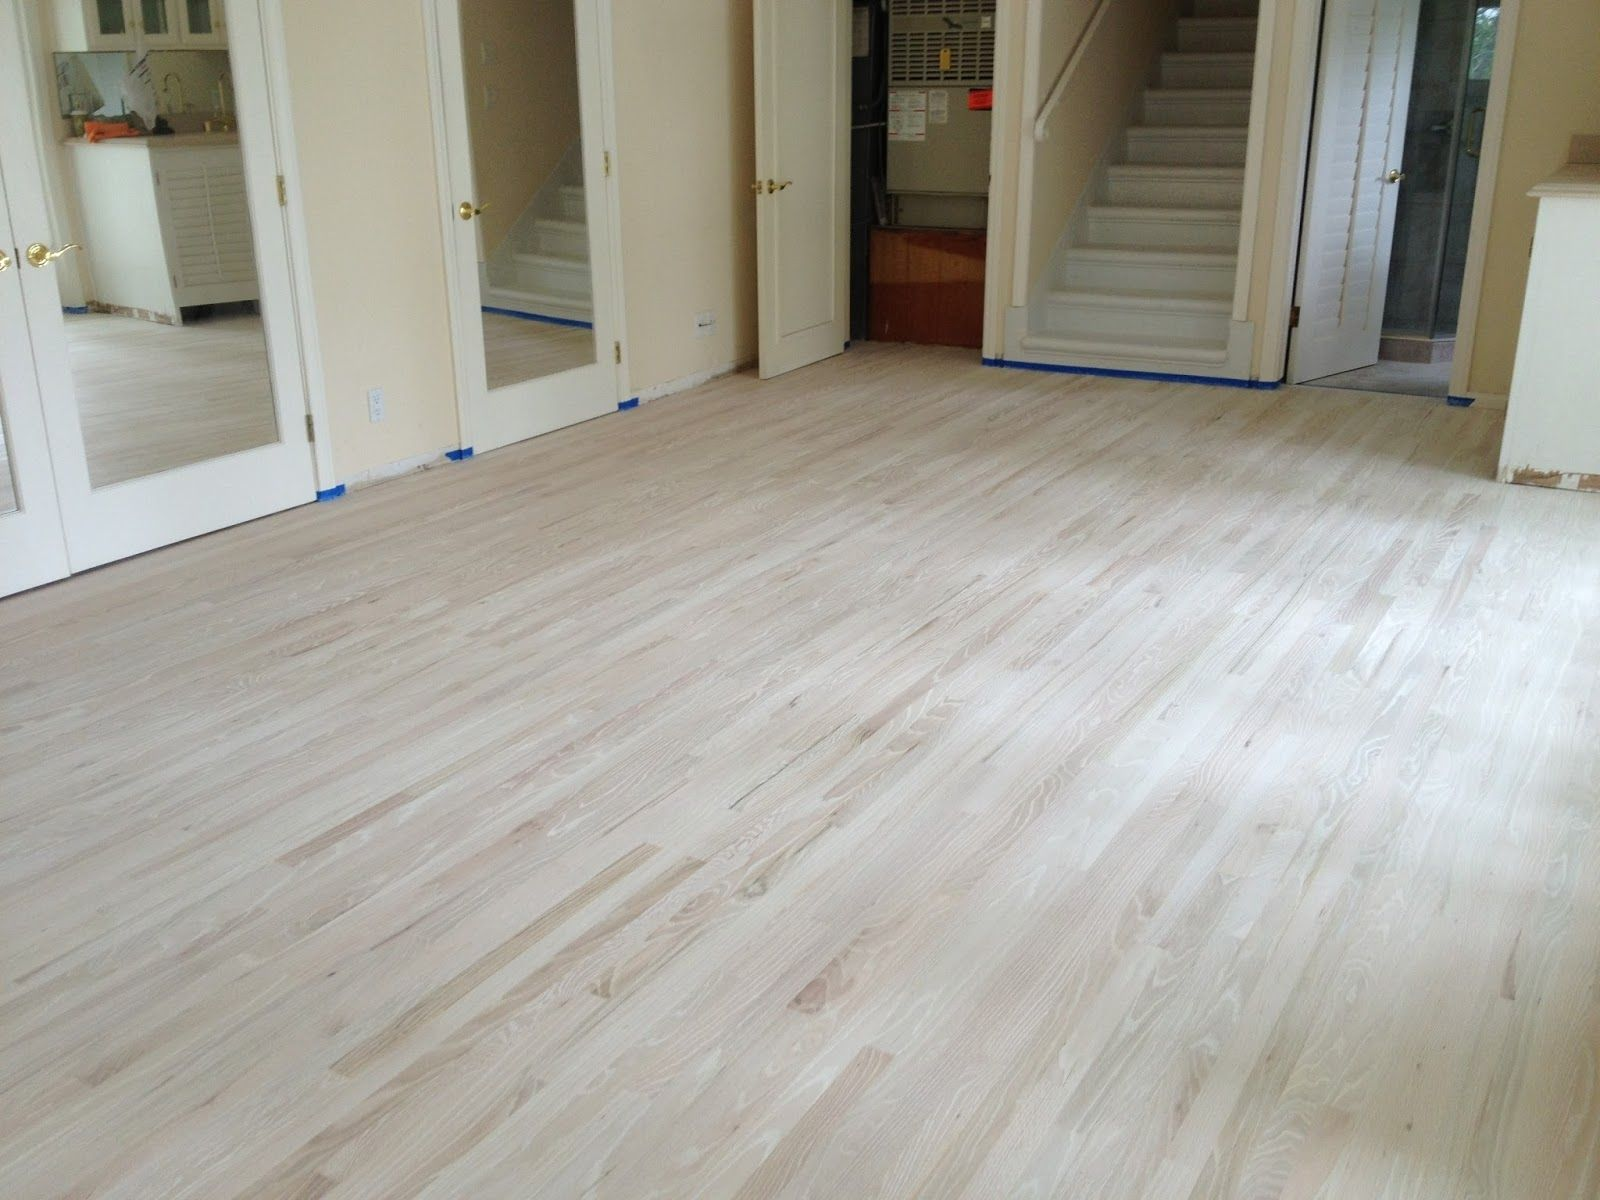 wood flooring - Bleached Wood Flooring